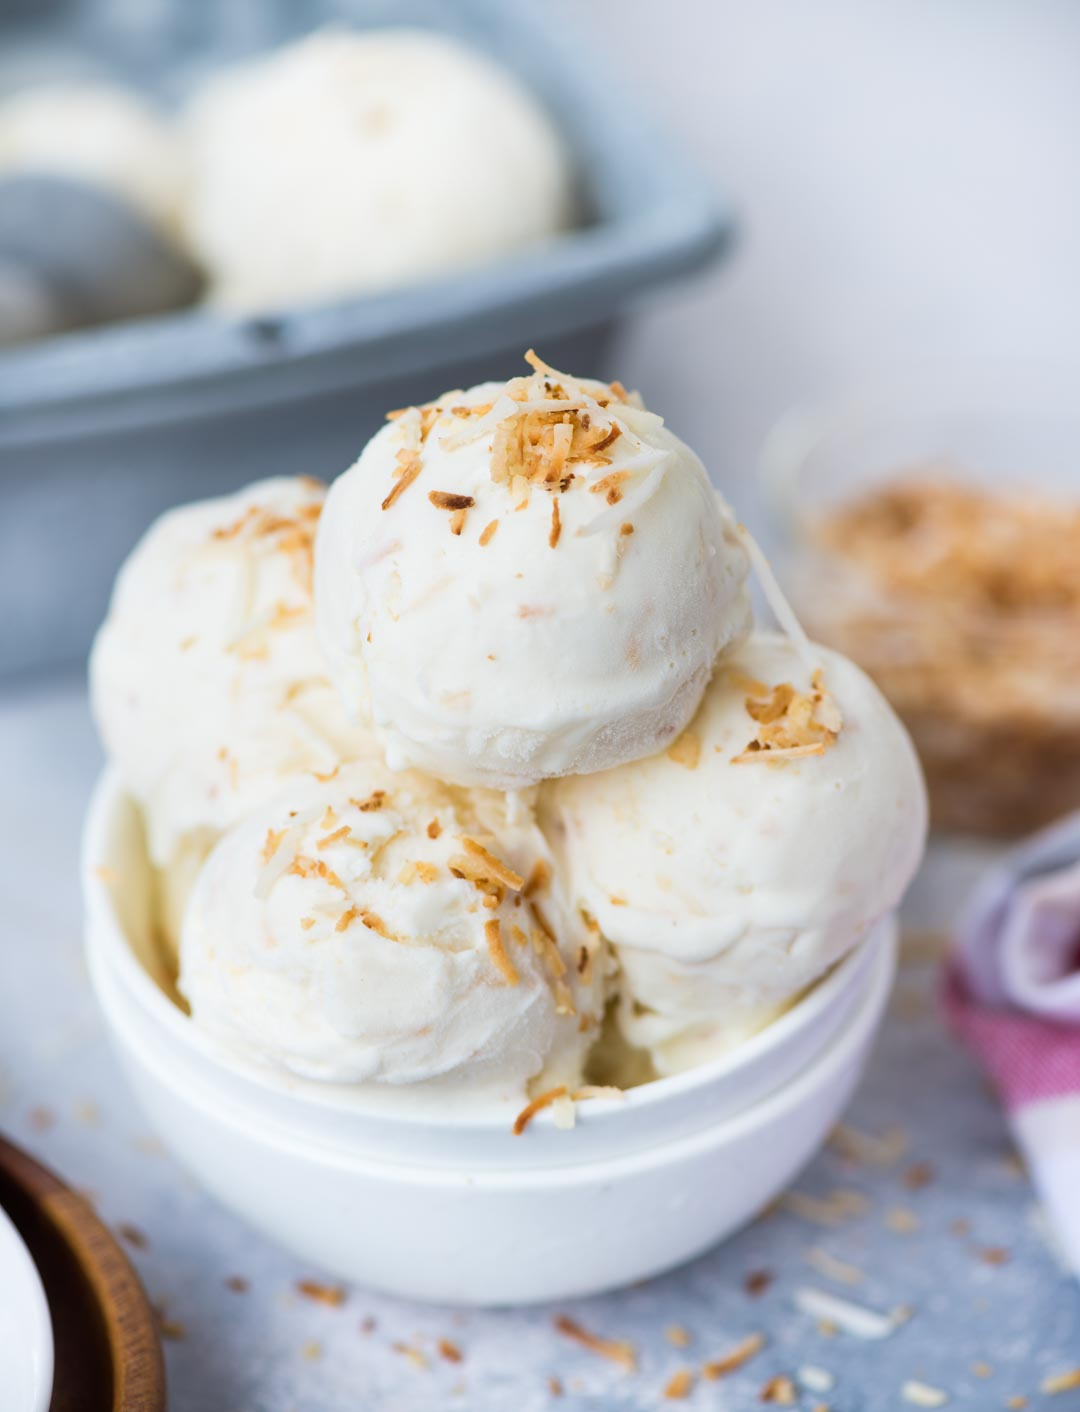 With real coconut flavour , this Coconut milk Ice Cream is so easy to make. It is no churn and you don't even need an Ice cream maker. Beautiful light texture and Creamy, this Coconut Ice Cream is a must try in Summer.